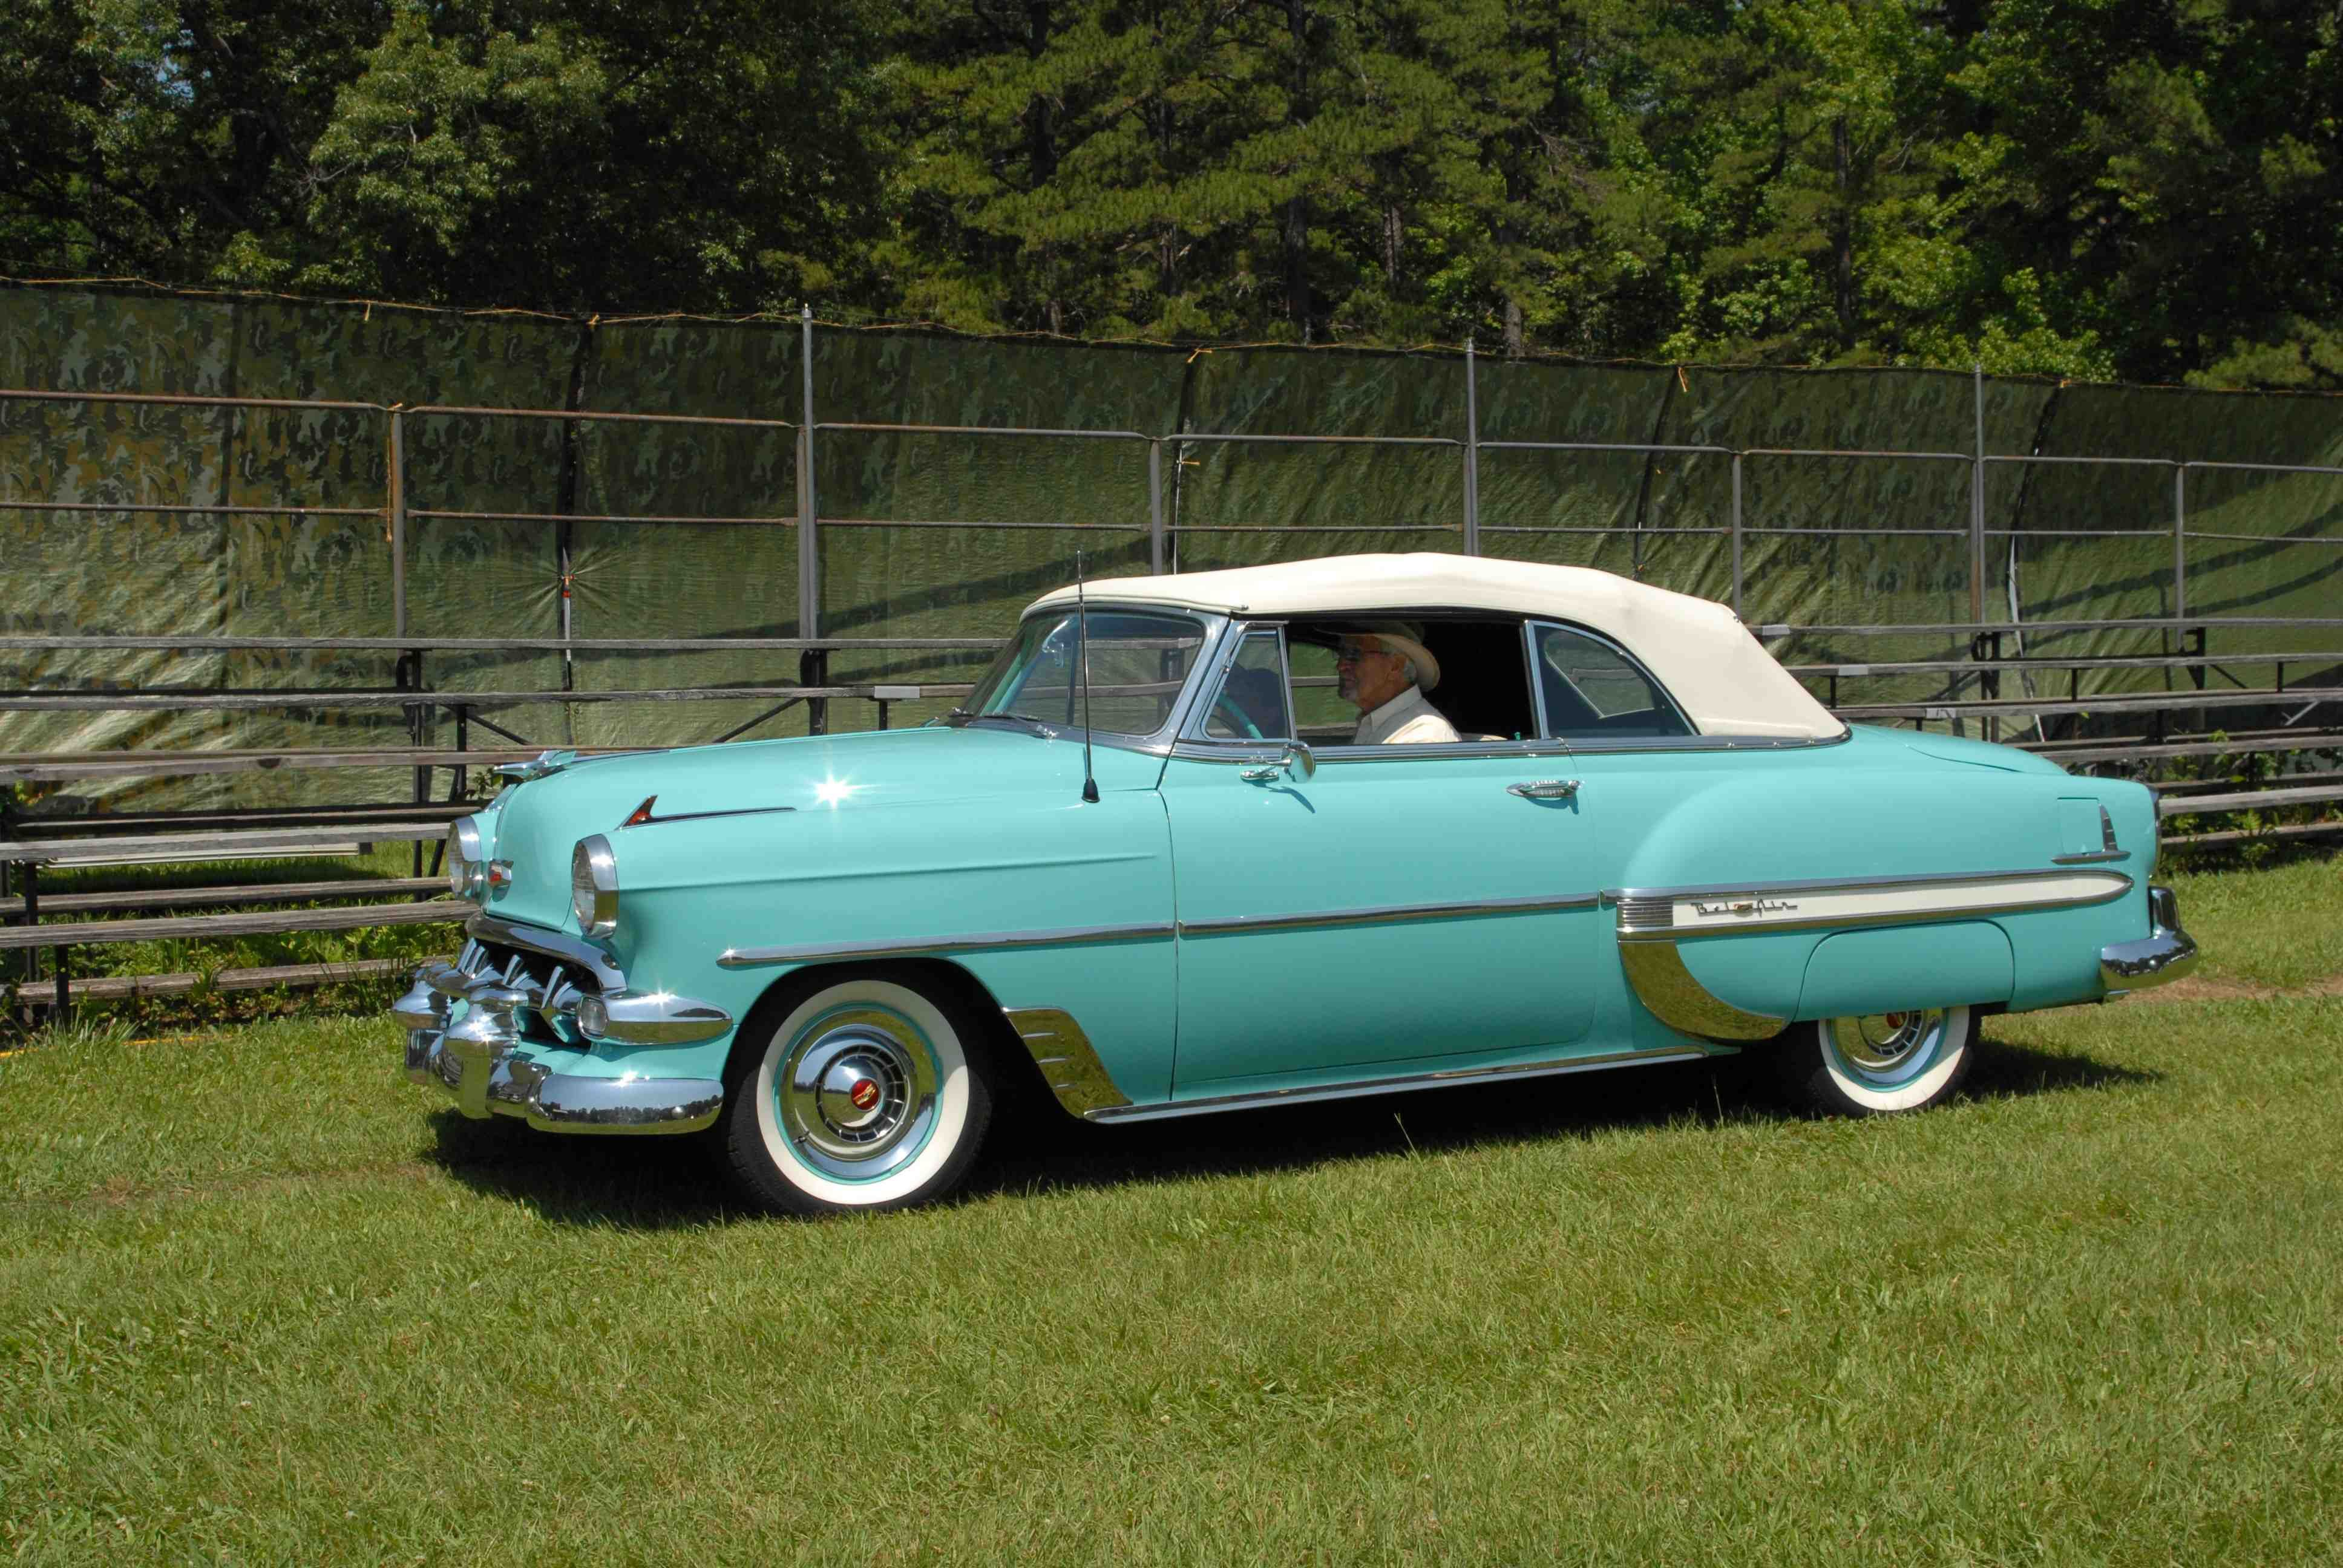 1954 Chevy Convertible | reference | Pinterest | Convertible, Cars ...